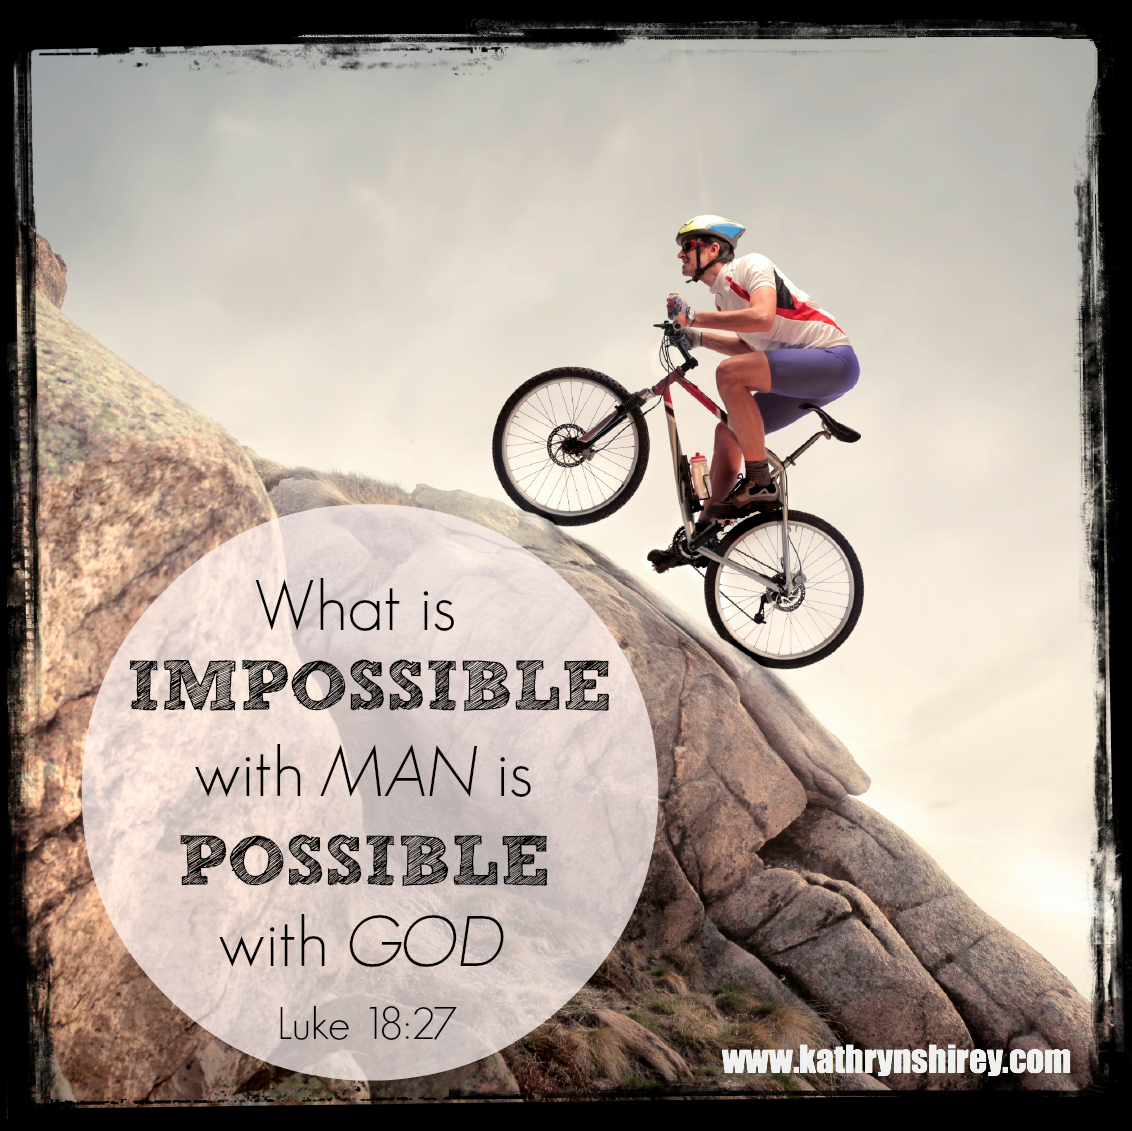 PossibleWithGod